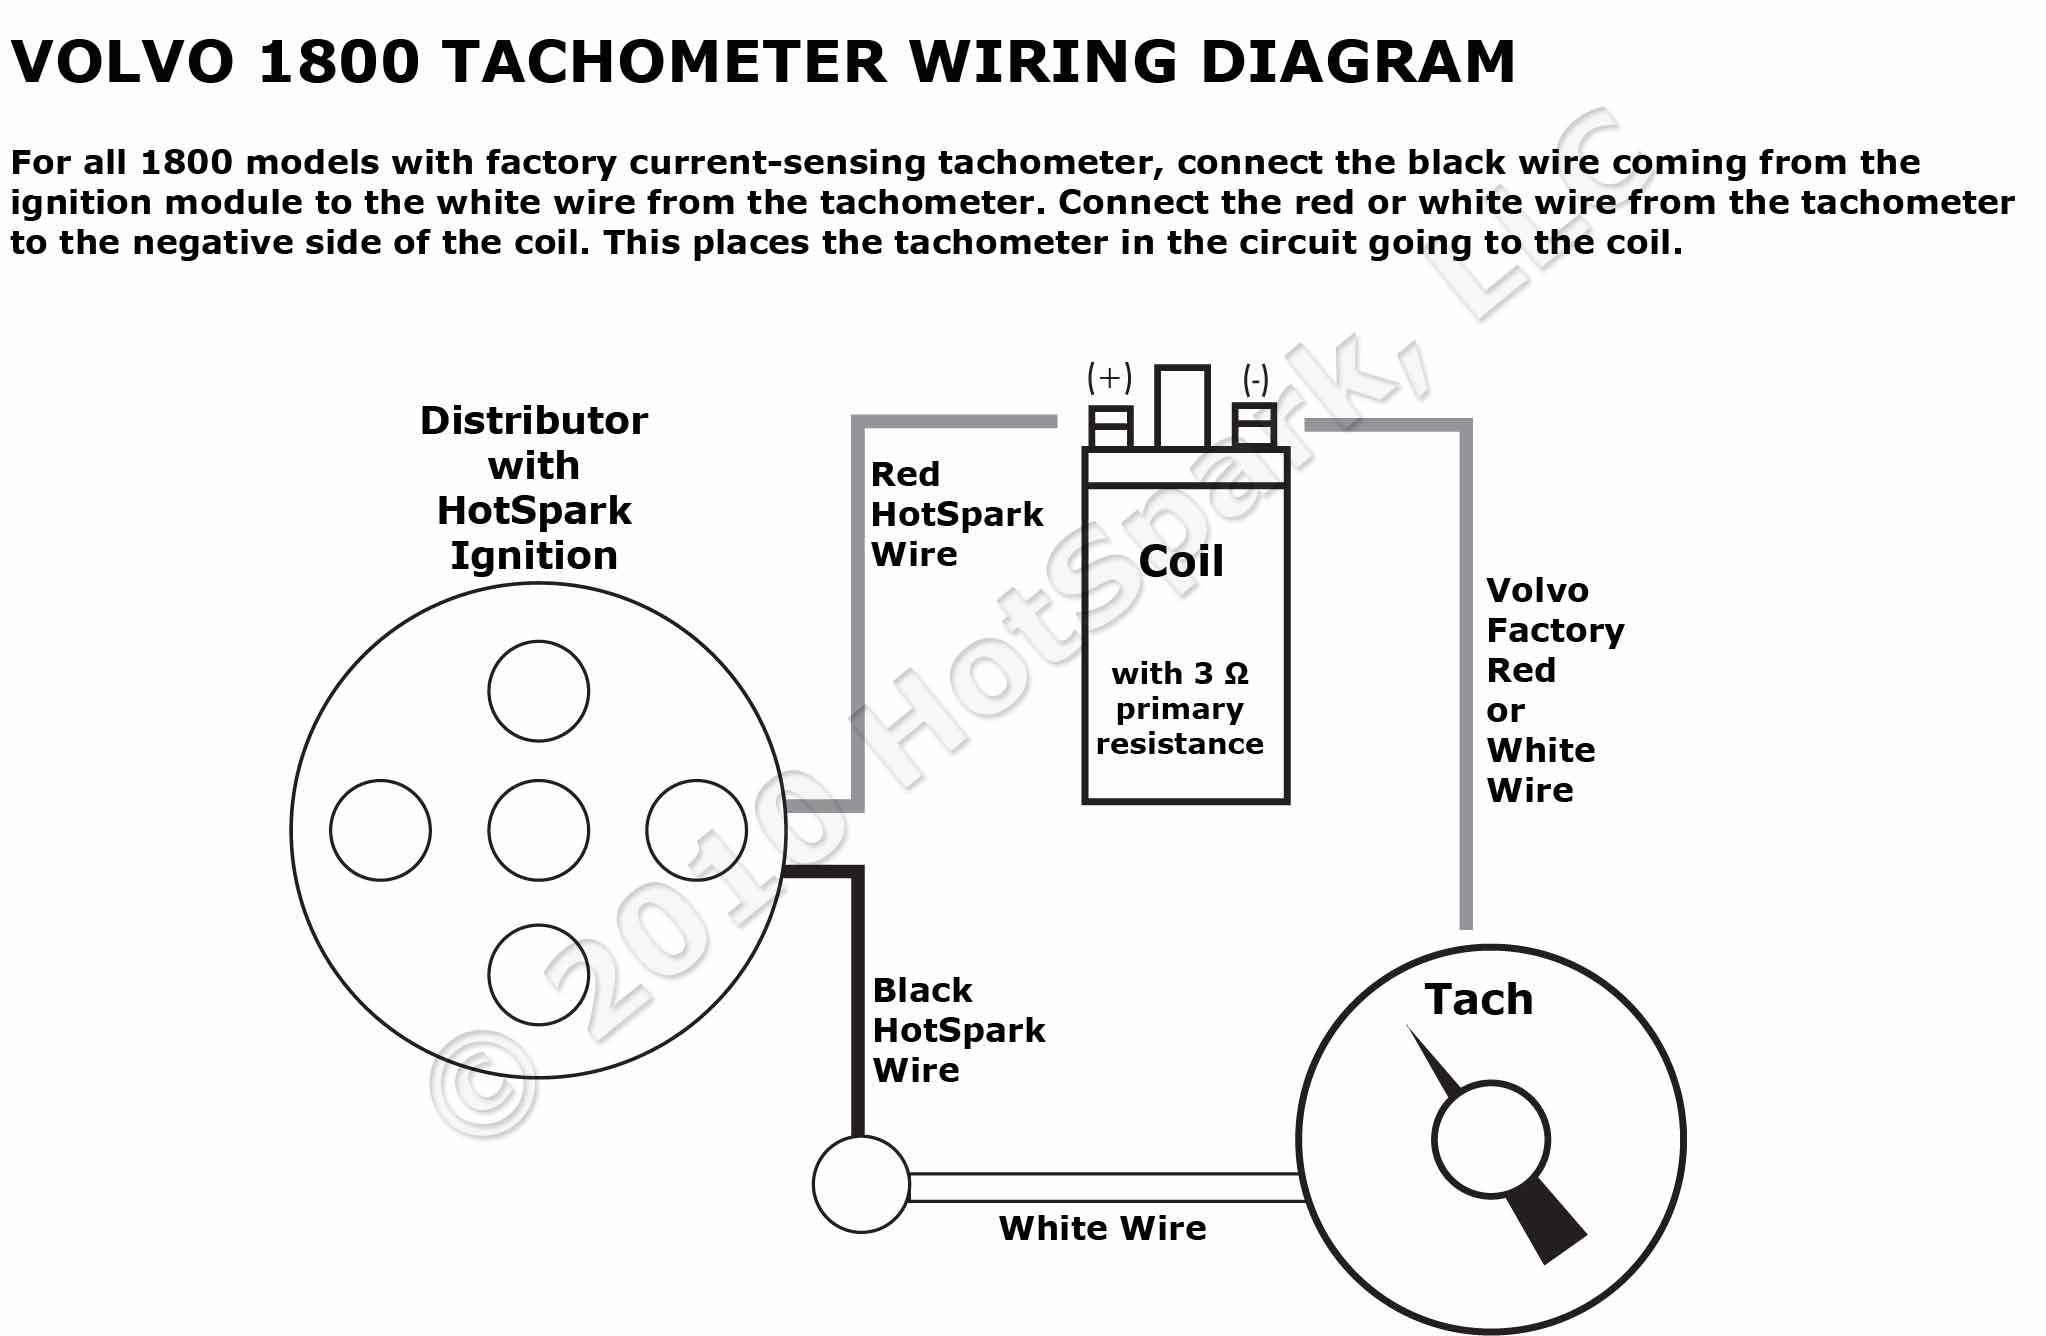 Volvo 1800 Tachometer and Hot Spark Wiring Diagram tach wiring diagram autometer tach wiring diagram \u2022 wiring motorcycle tachometer wiring diagram at webbmarketing.co